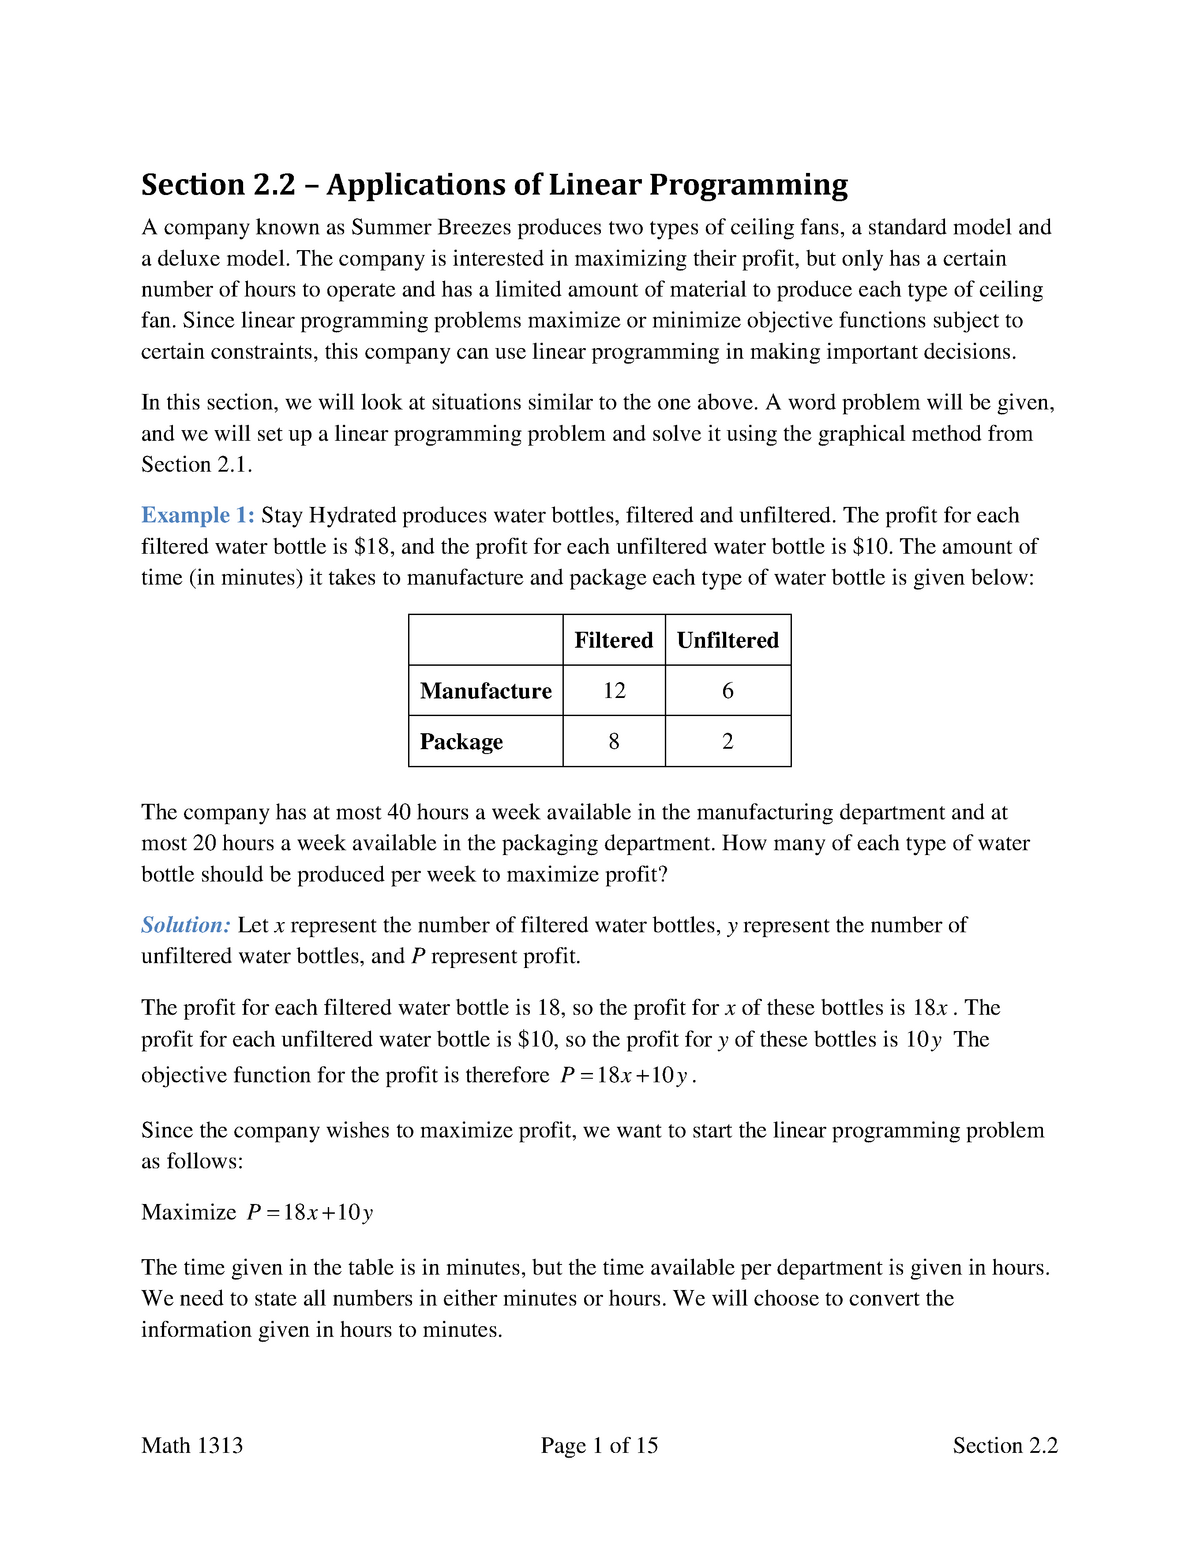 Applications of Linear Programming Section 2 2 - MATH 1313